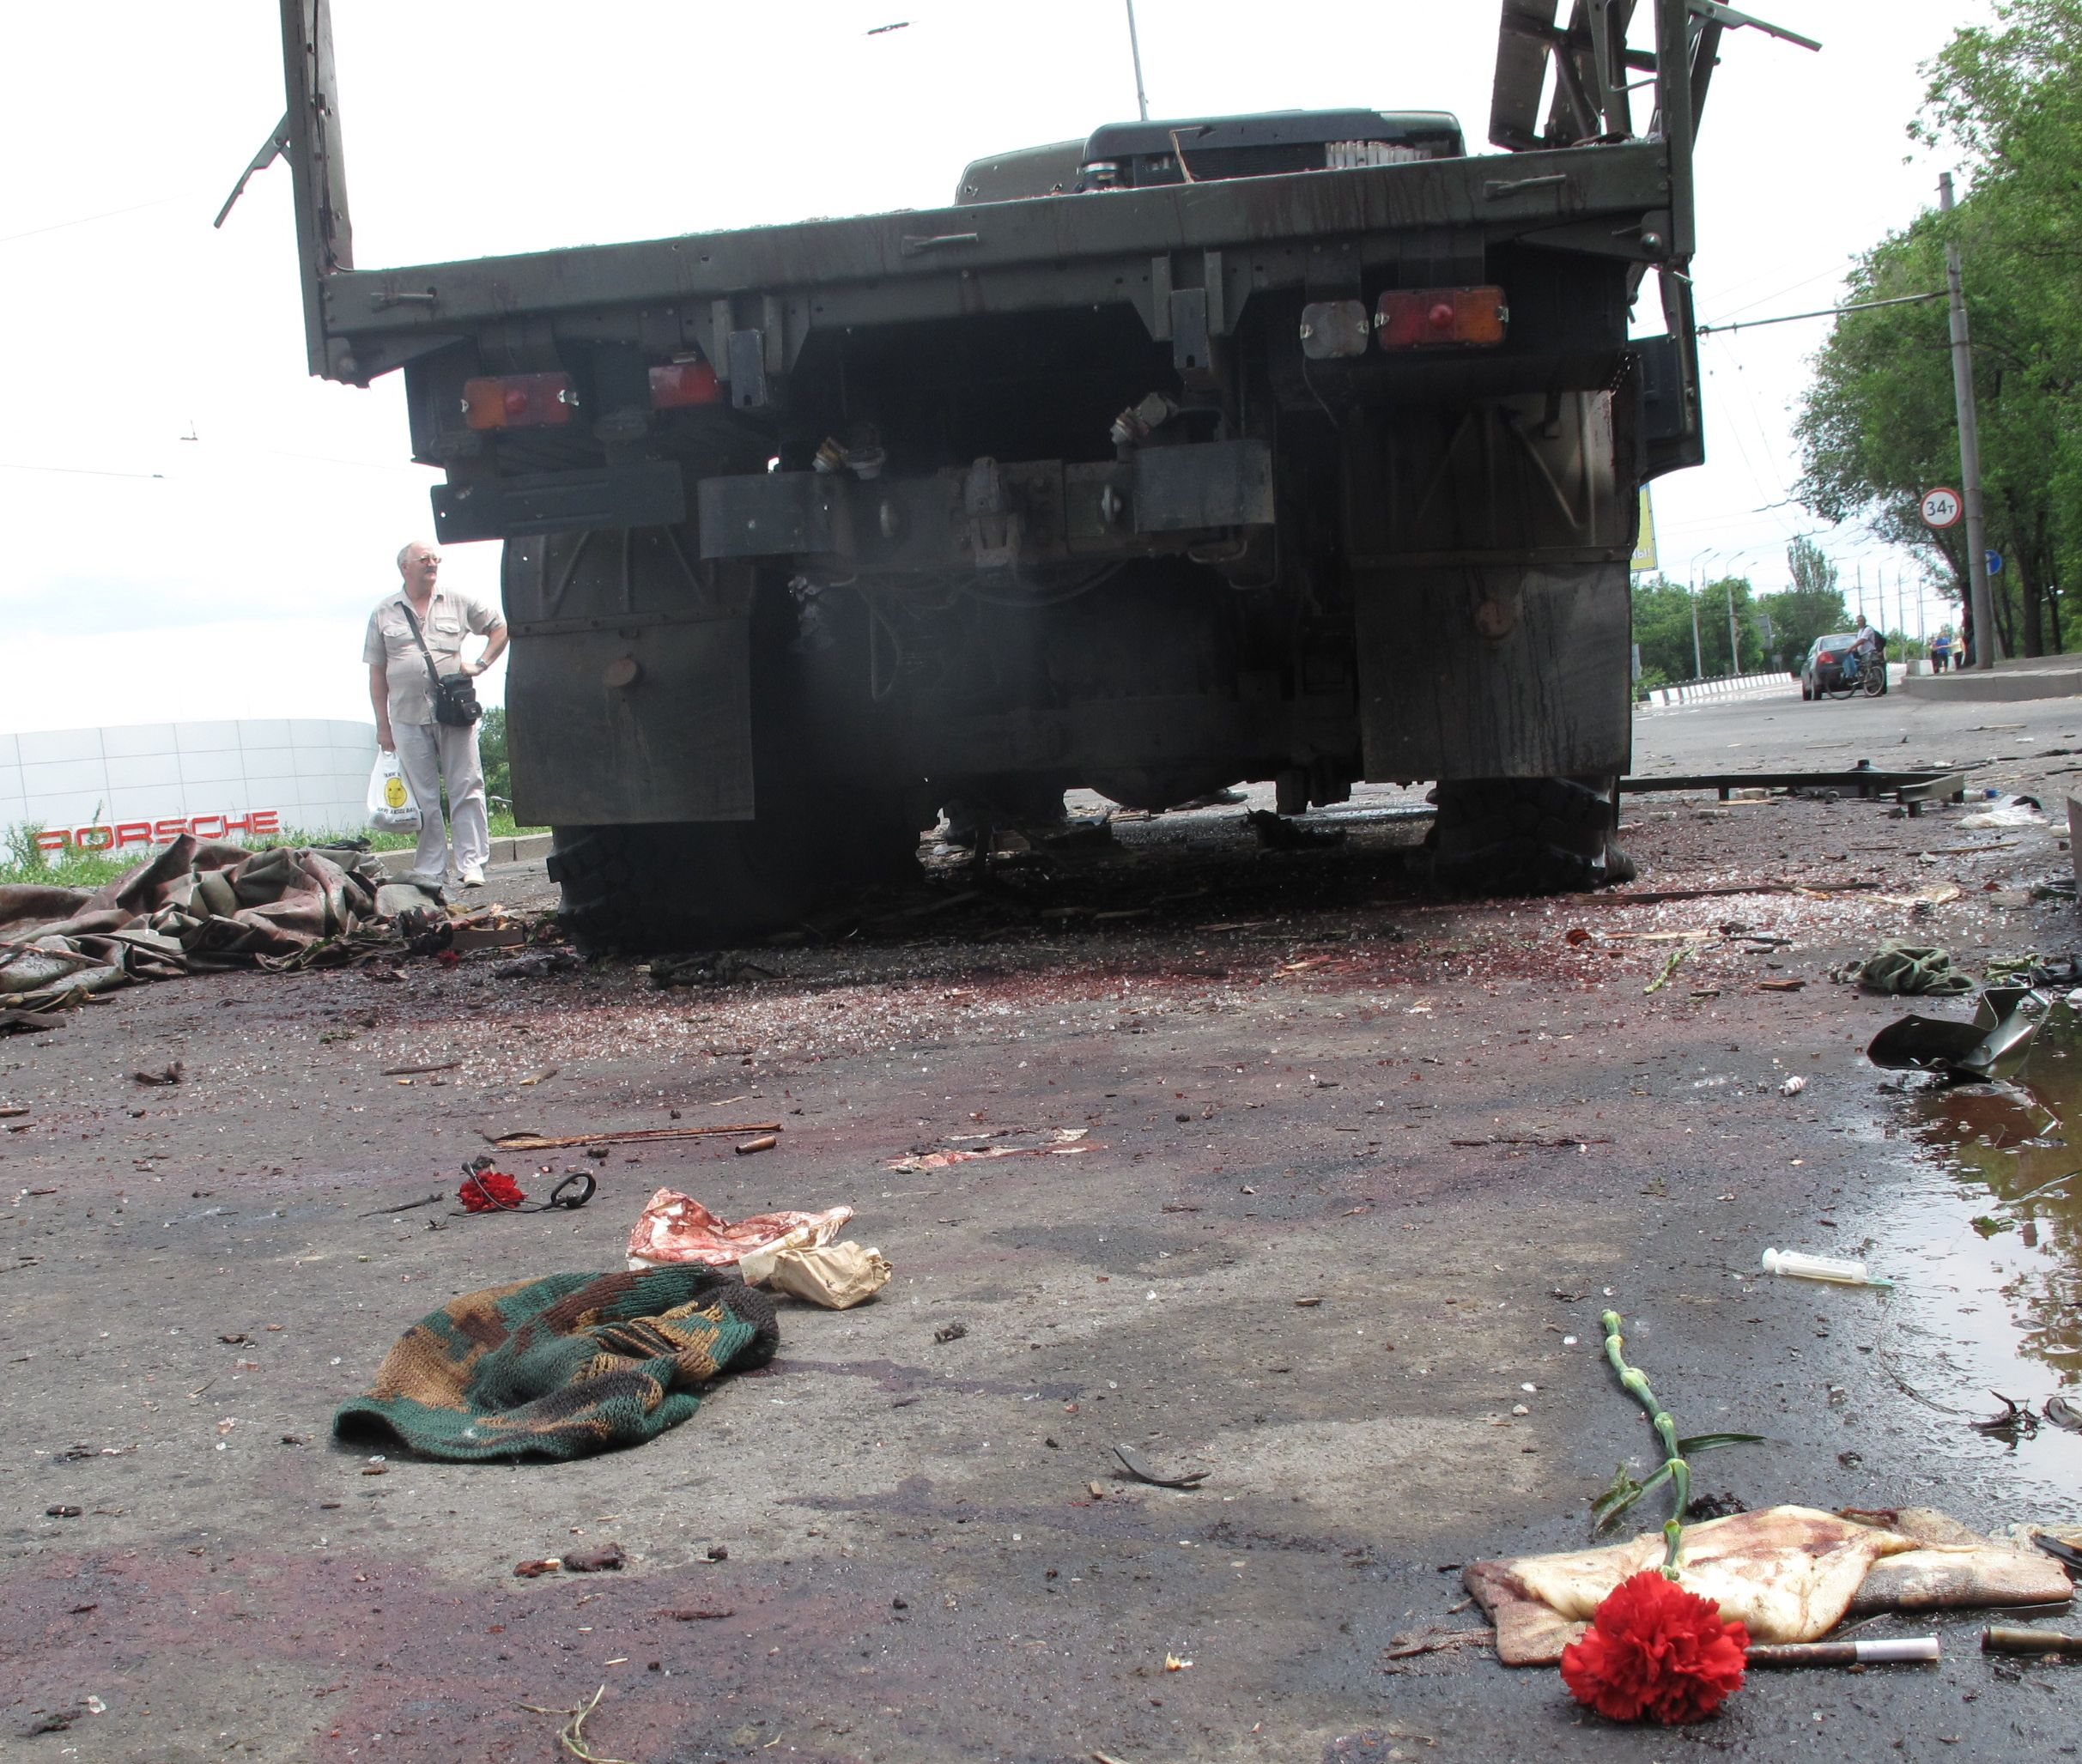 A red carnation is left amidst shell casings, broken glass and human remains following a pre-dawn attack on a separatist vehicle by a Ukrainian helicopter gunship. (Jacob Resneck/FSRN)